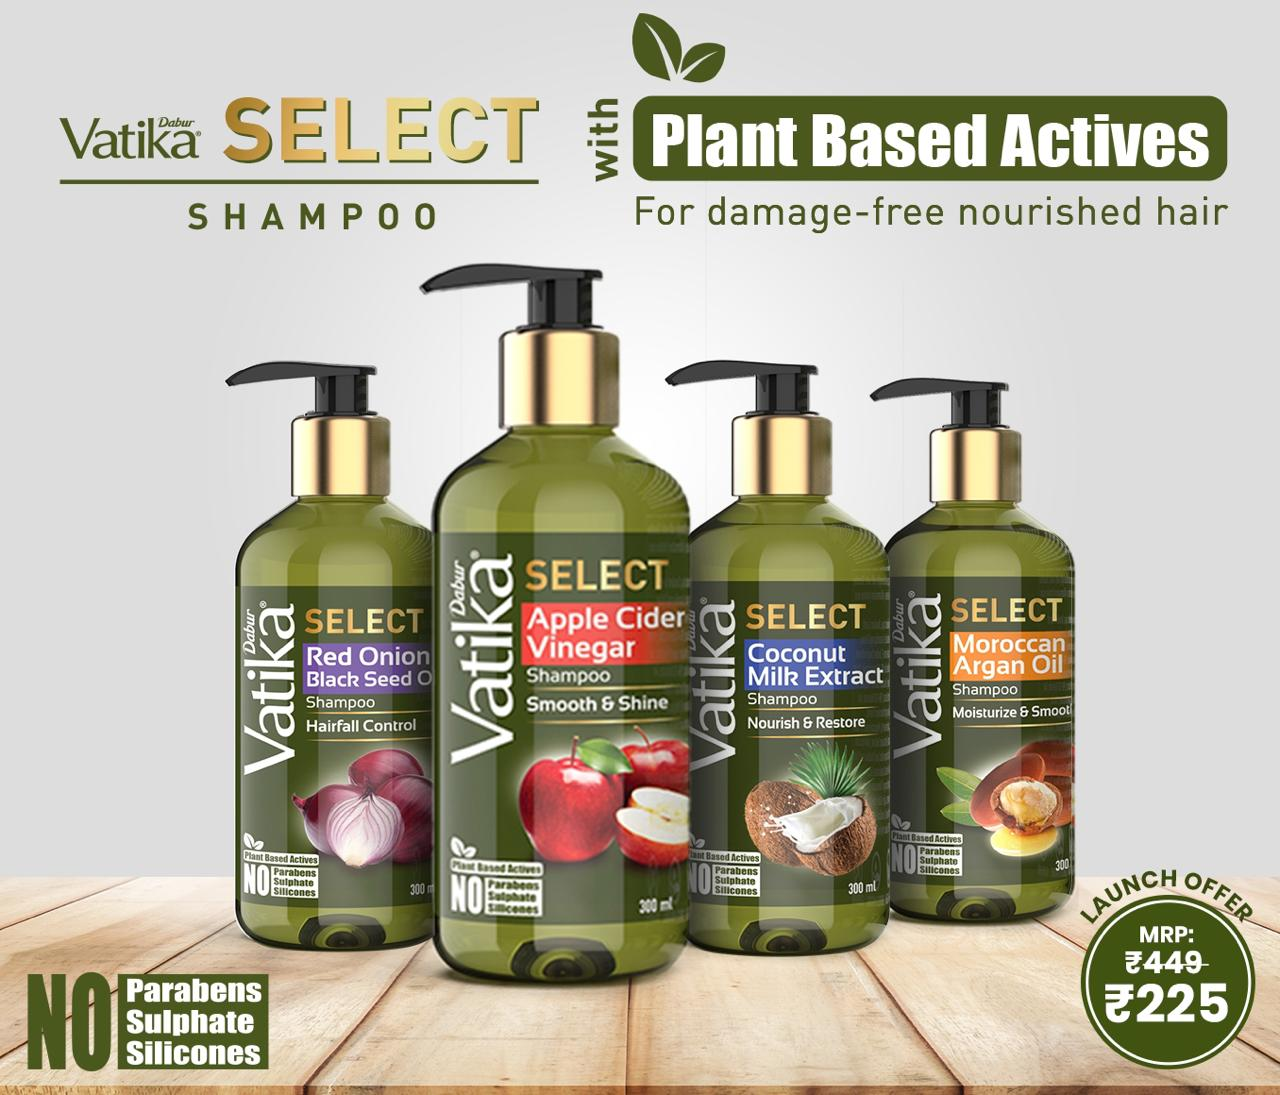 Dabur launches 'Vatika Select' premium range of shampoos